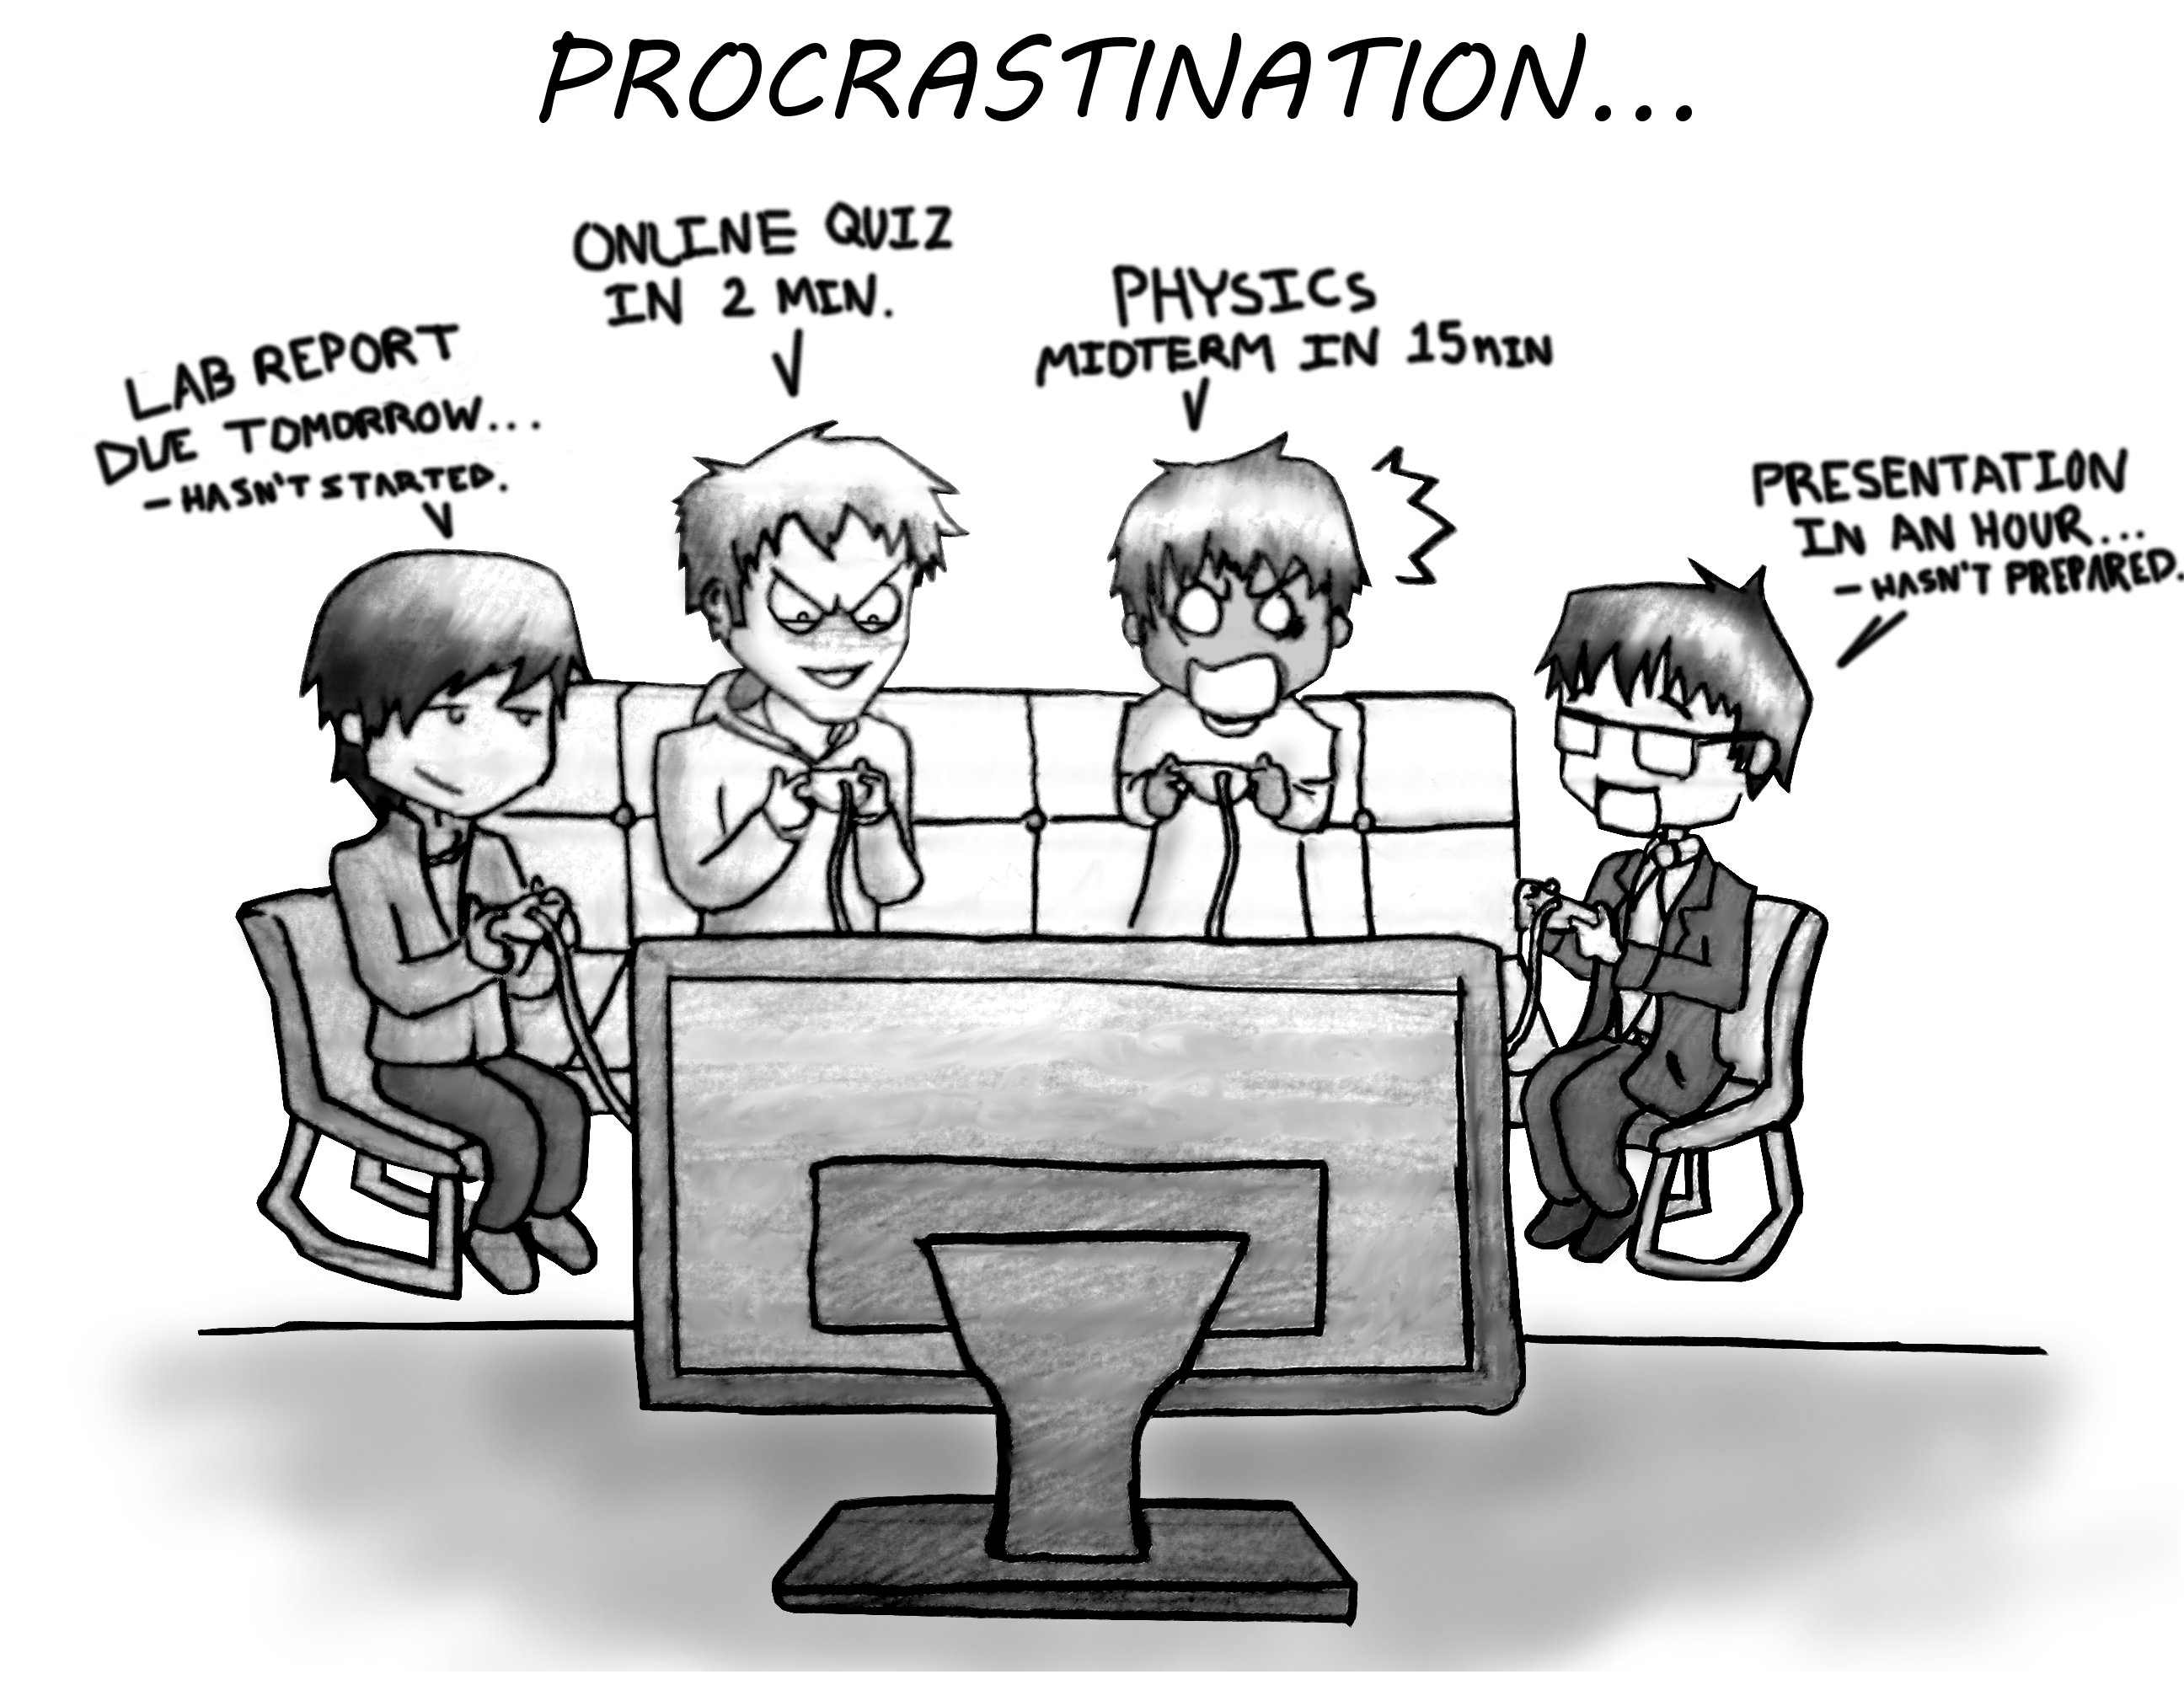 the art of procrastination Power, participation and meaning: assessment #2 music: memedreamsupreme420 - carlos mifsud.